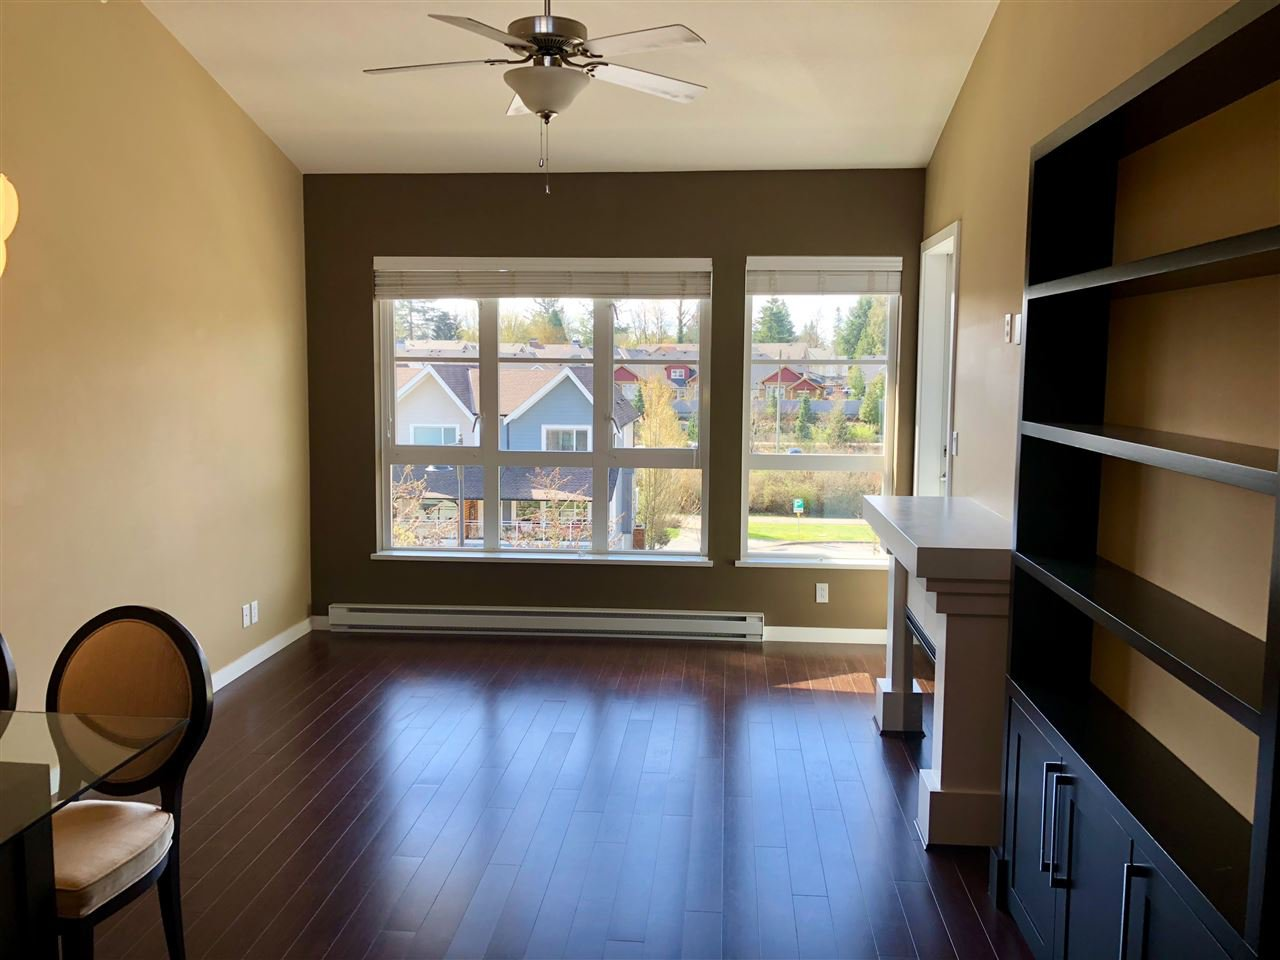 """Photo 9: Photos: 408 23215 BILLY BROWN Road in Langley: Fort Langley Condo for sale in """"WATERFRONT AT BEDFORD LANDING"""" : MLS®# R2390619"""